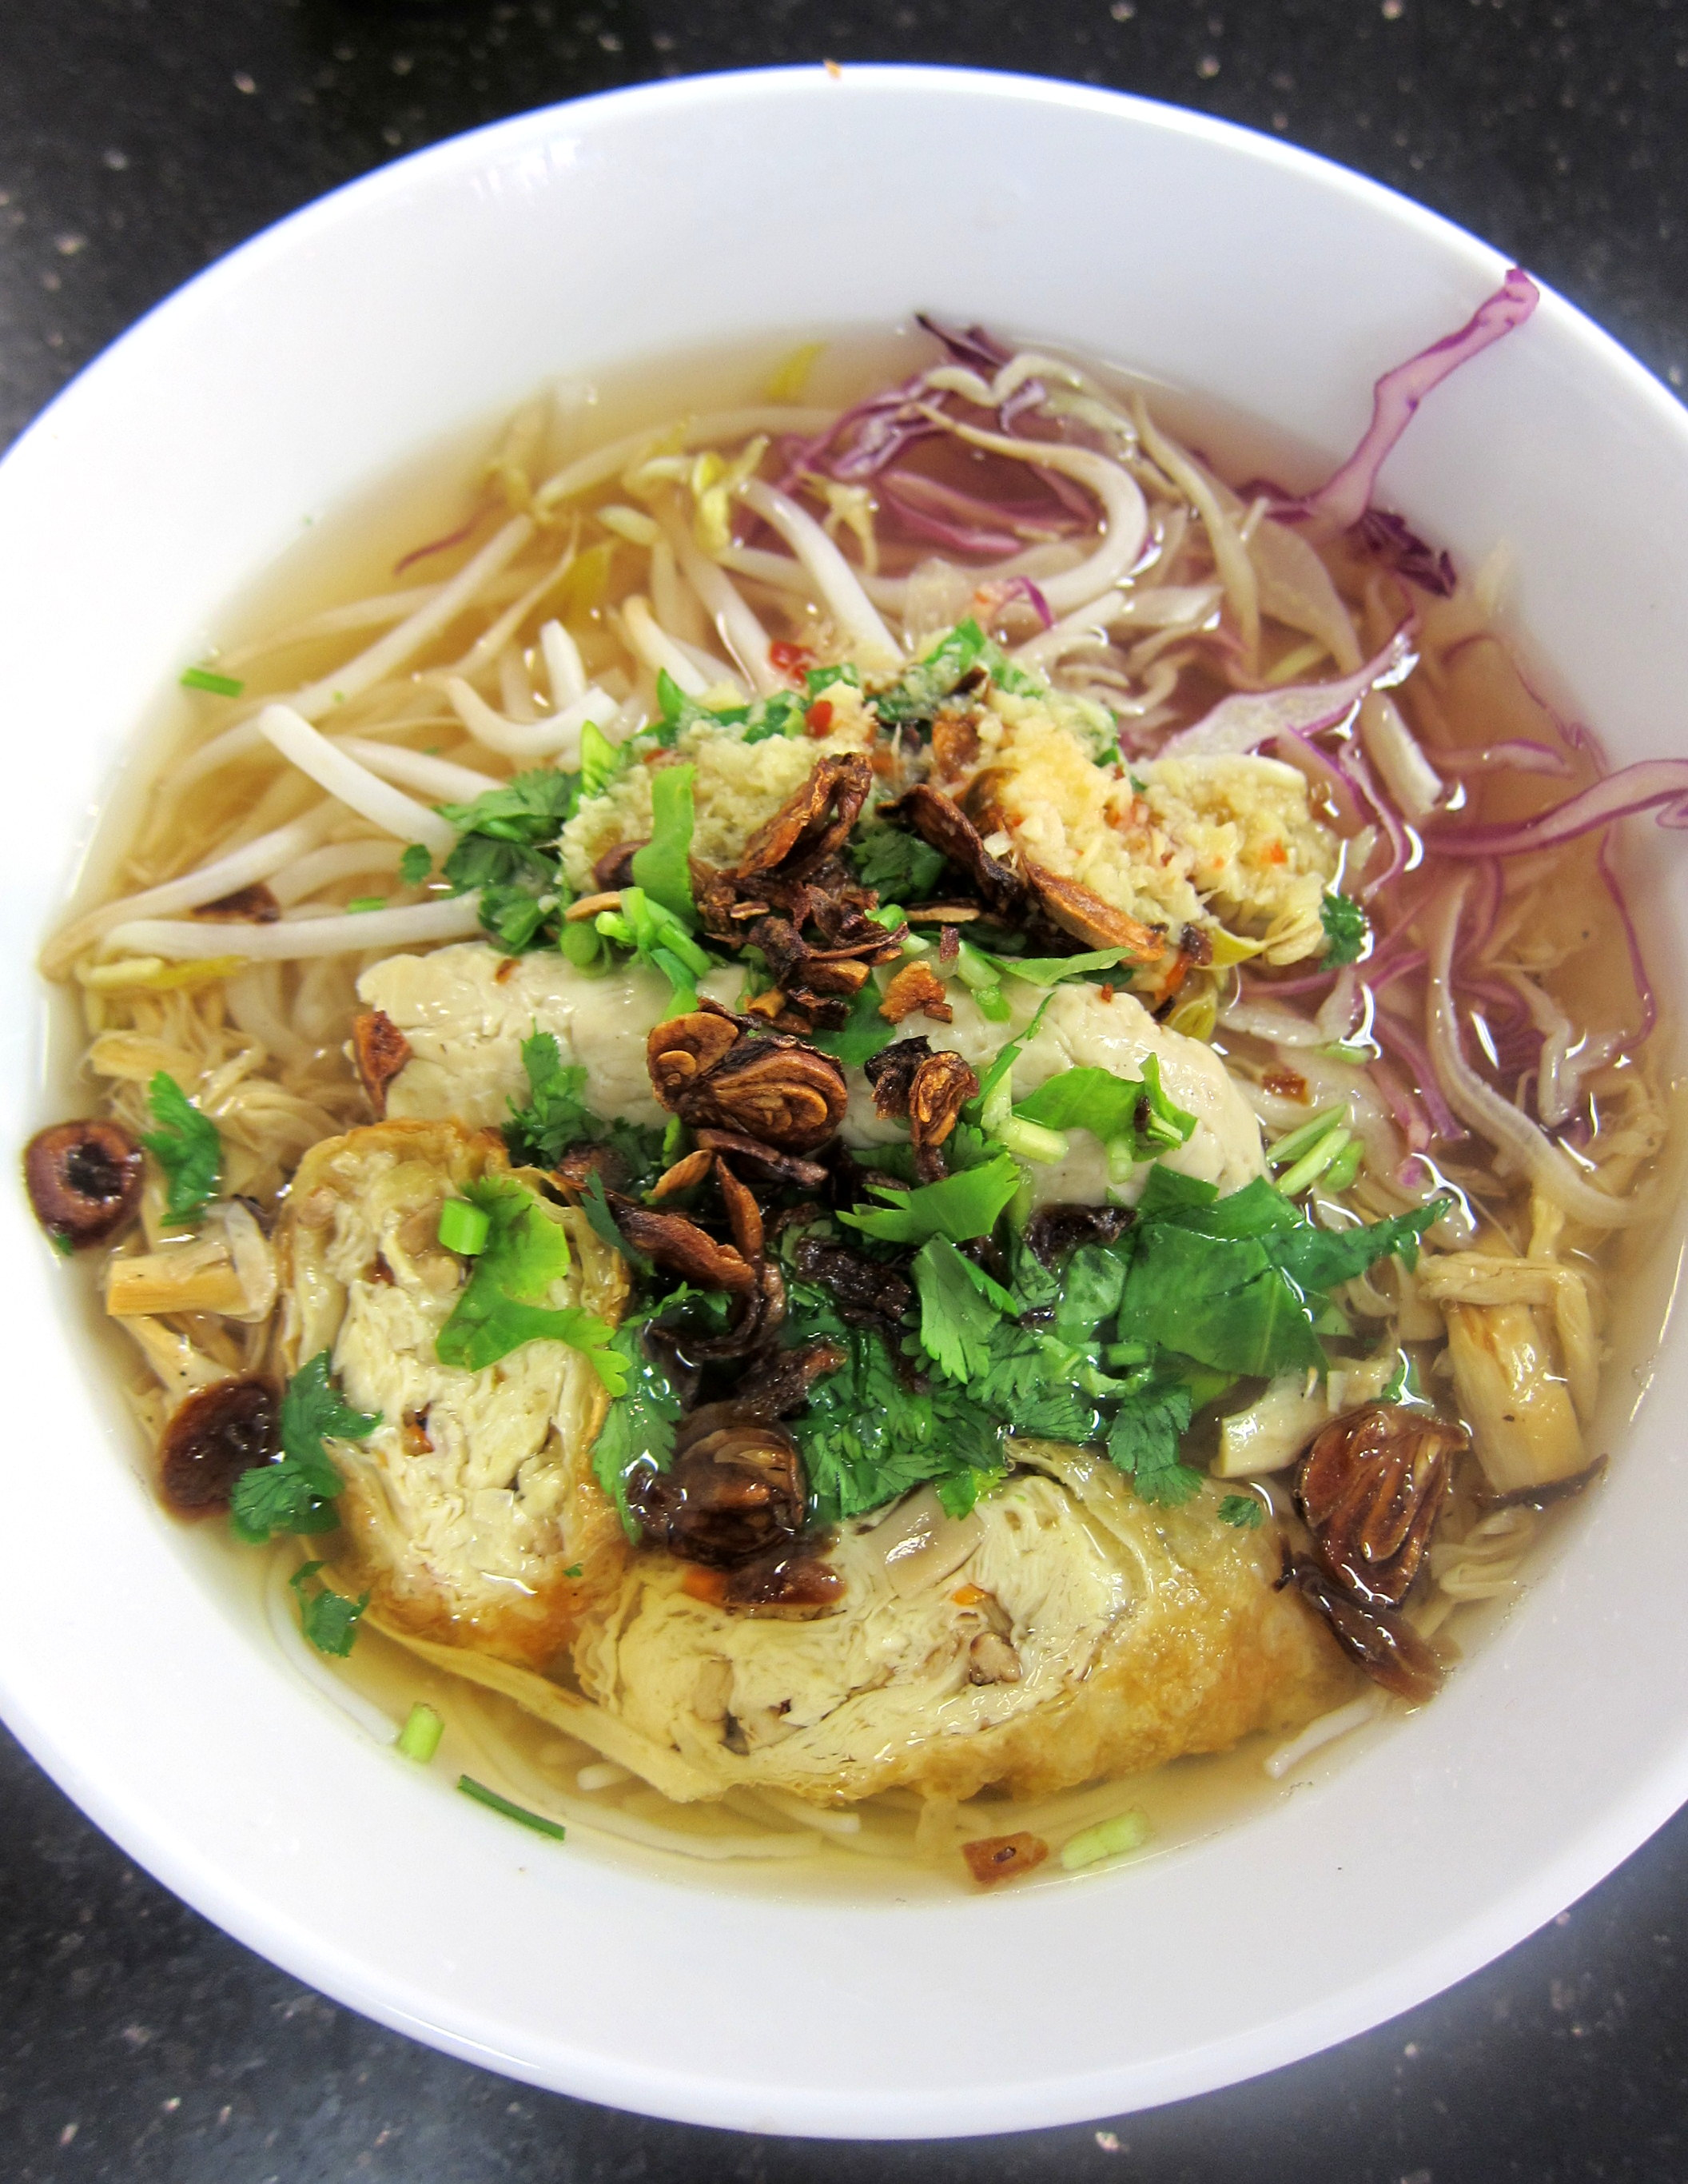 Bun mang – with bamboo shoot, seitan, beansprout and rice noodle